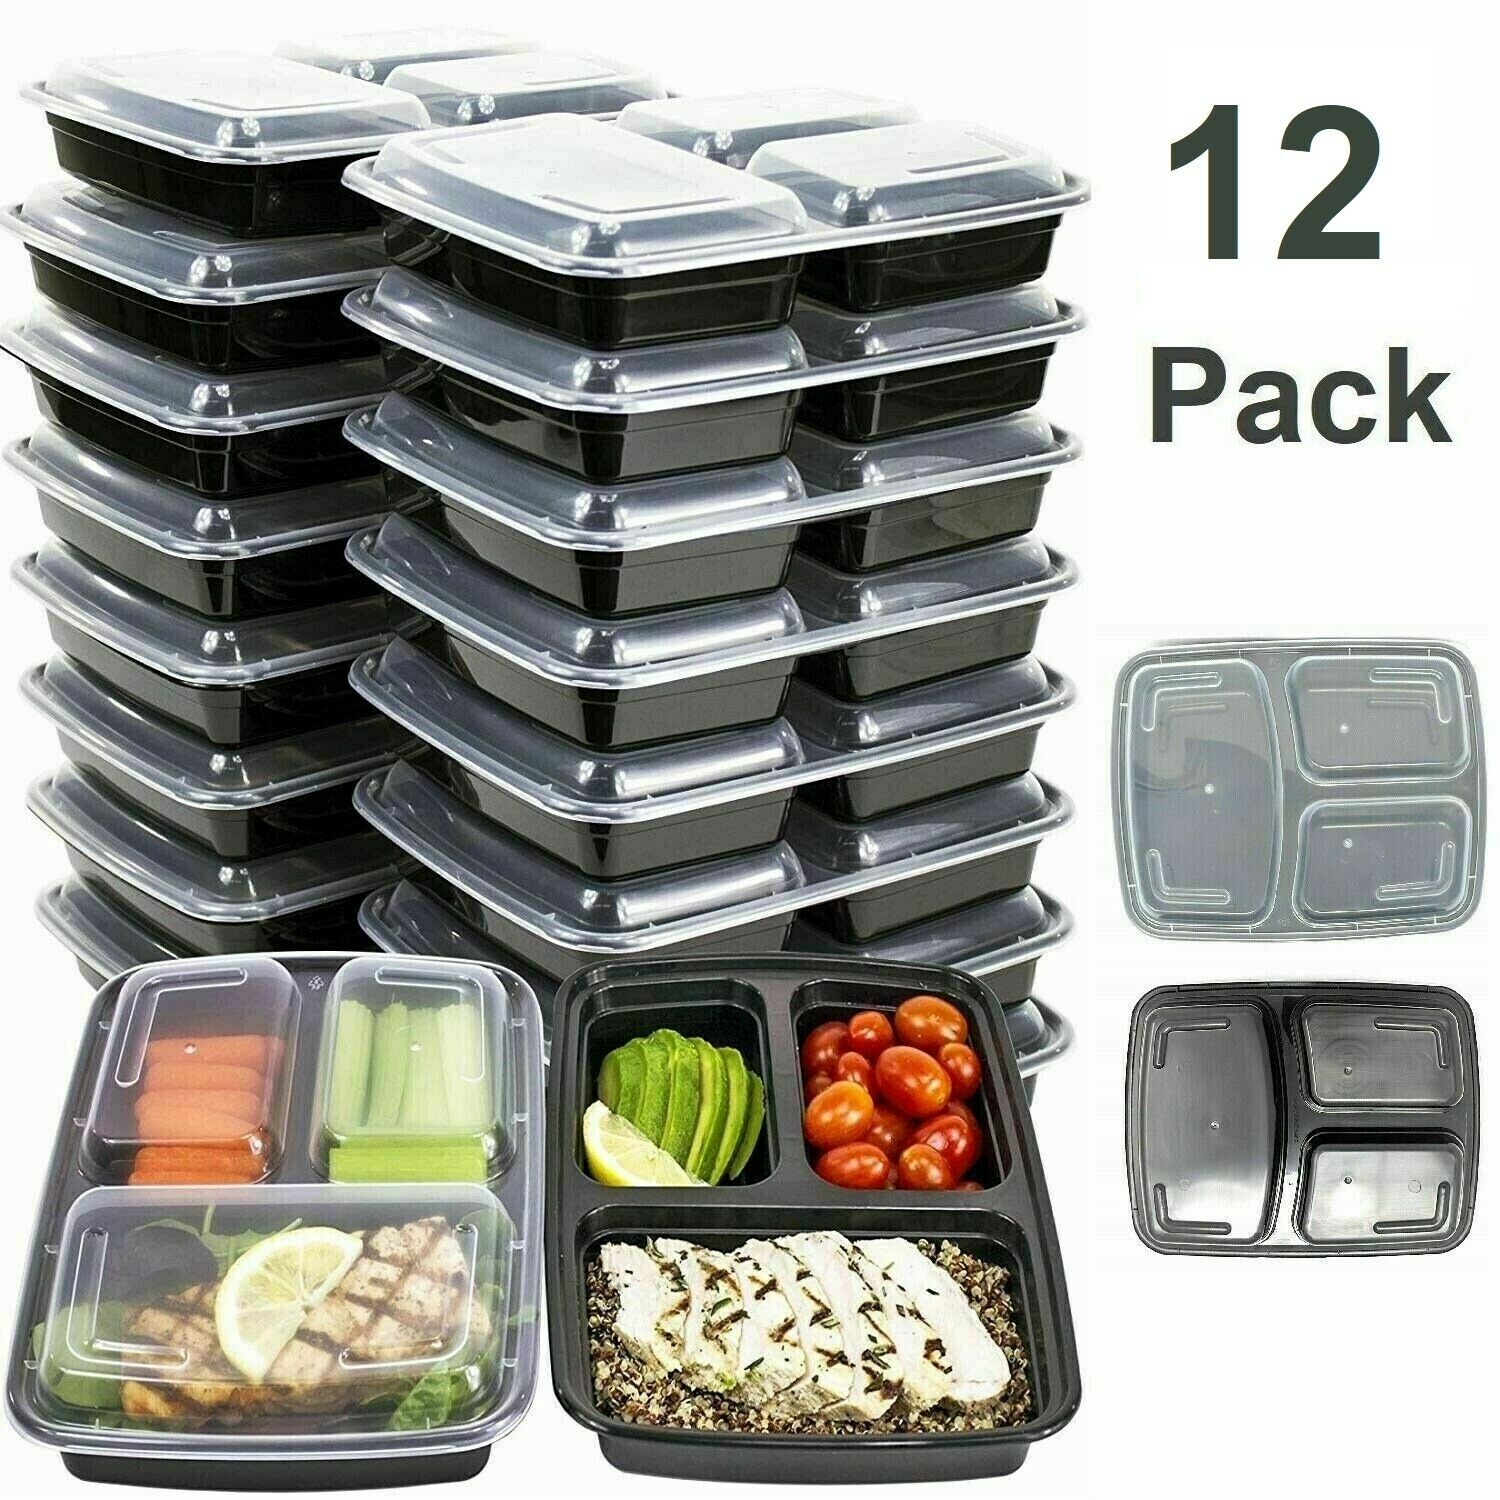 MEAL PREP CONTAINERS 3 Compartment Microwave Safe Reusable Food Storage 12 PACK 1